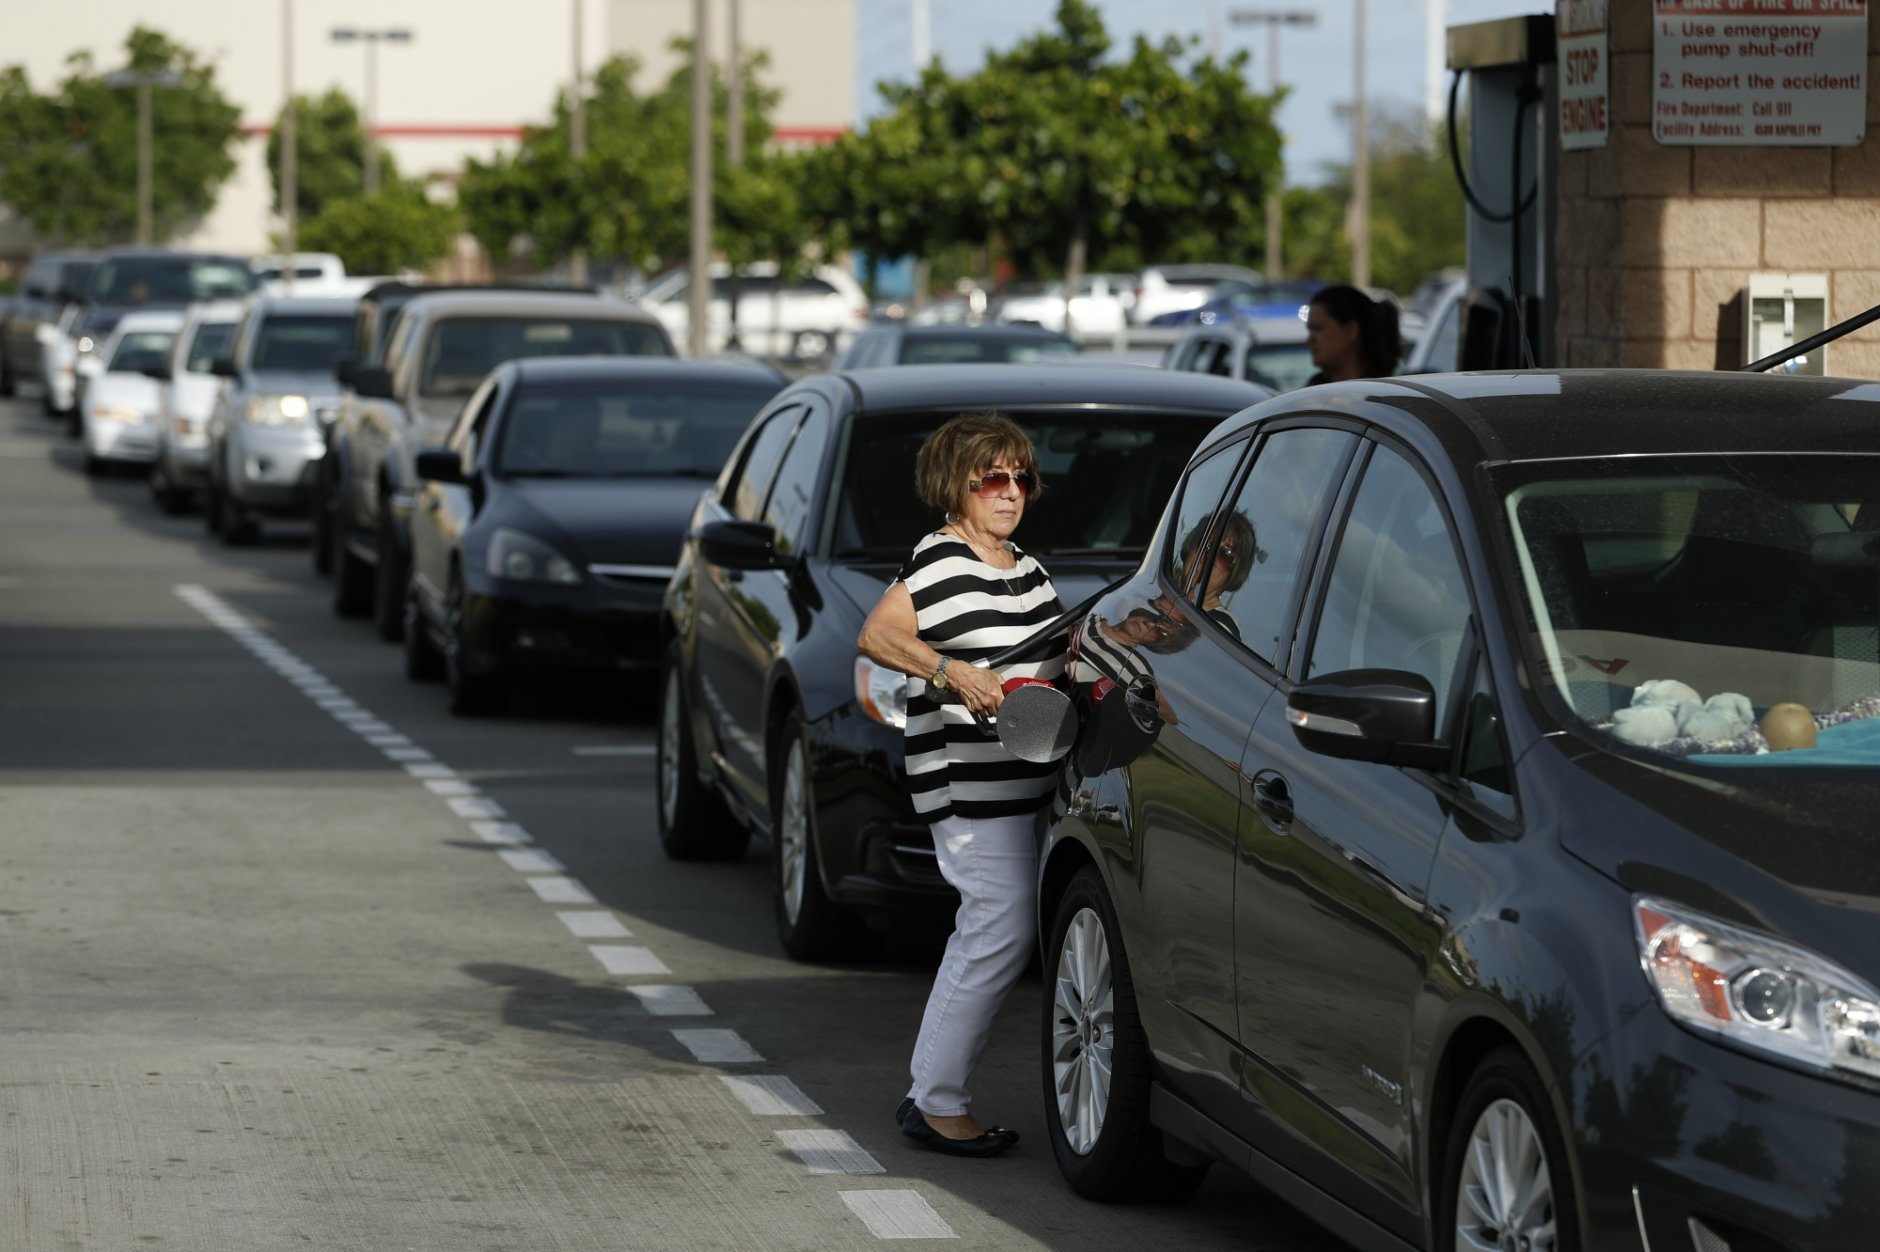 A woman fills up her car as other vehicles line up behind her for gasoline at a Costco in preparation for Hurricane Lane, Wednesday, Aug. 22, 2018, in Kapolei, Hawaii. (AP Photo/John Locher)